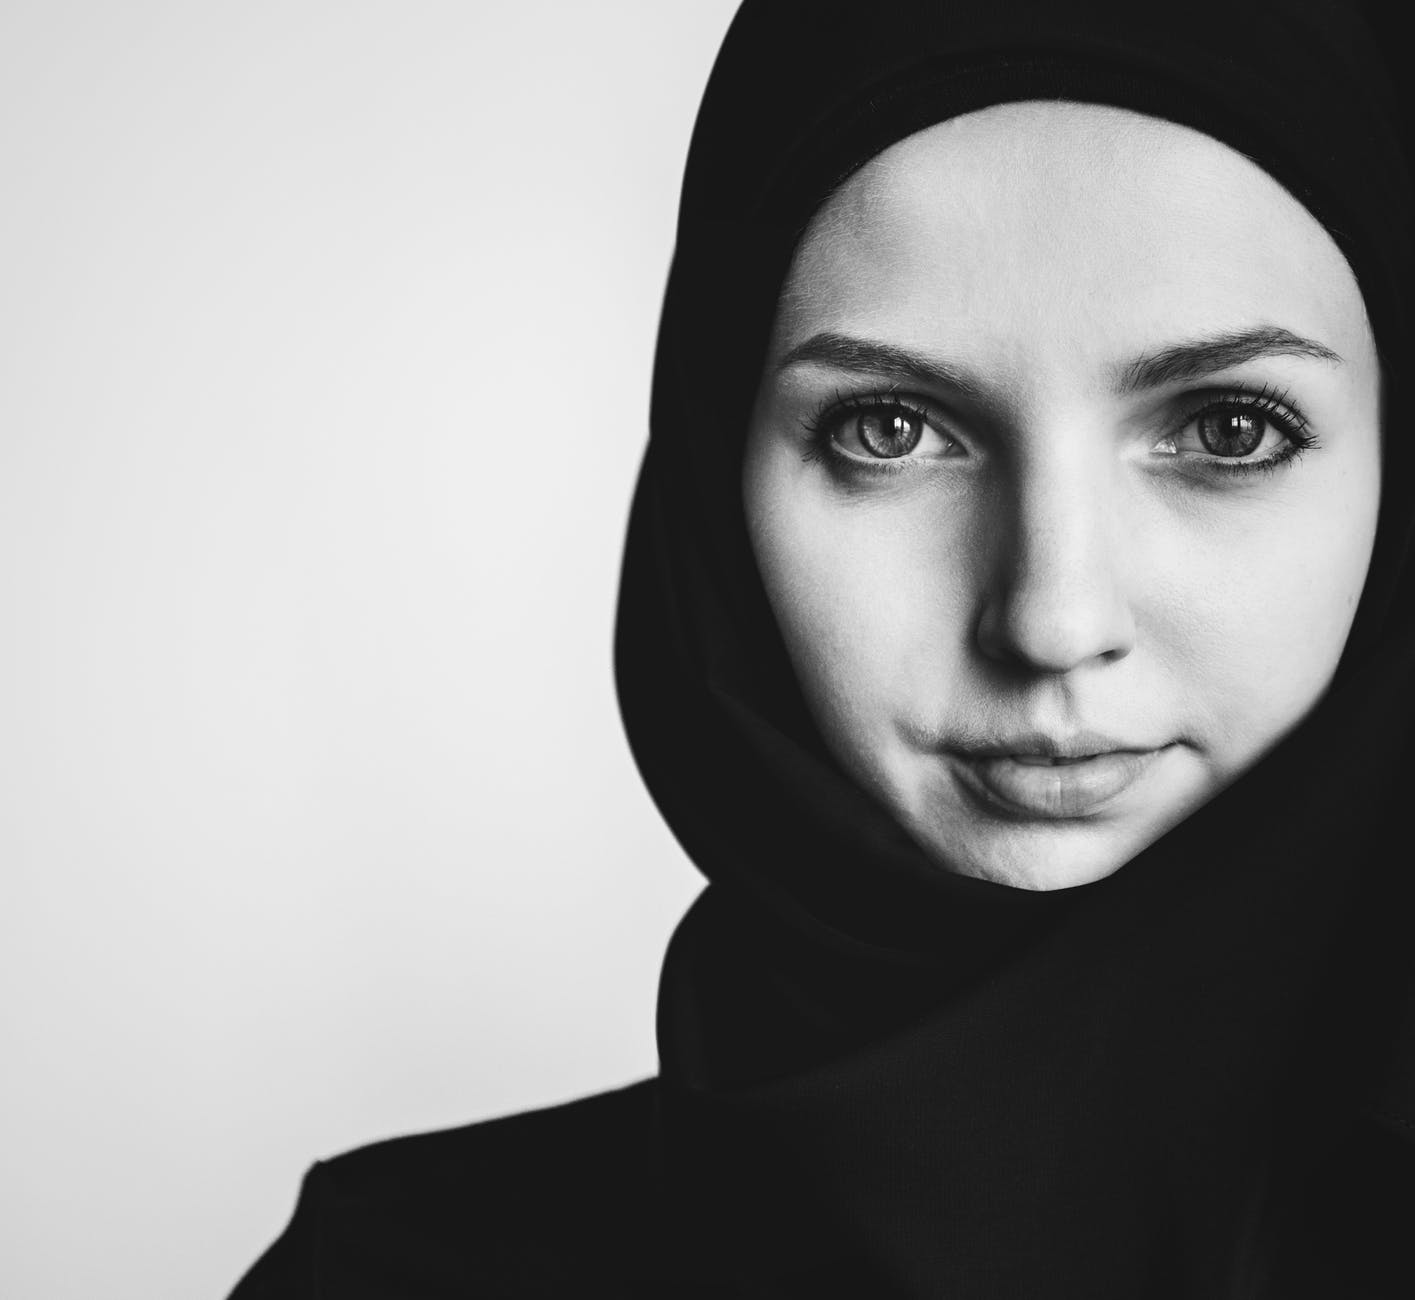 portrait photo of woman wearing hijab